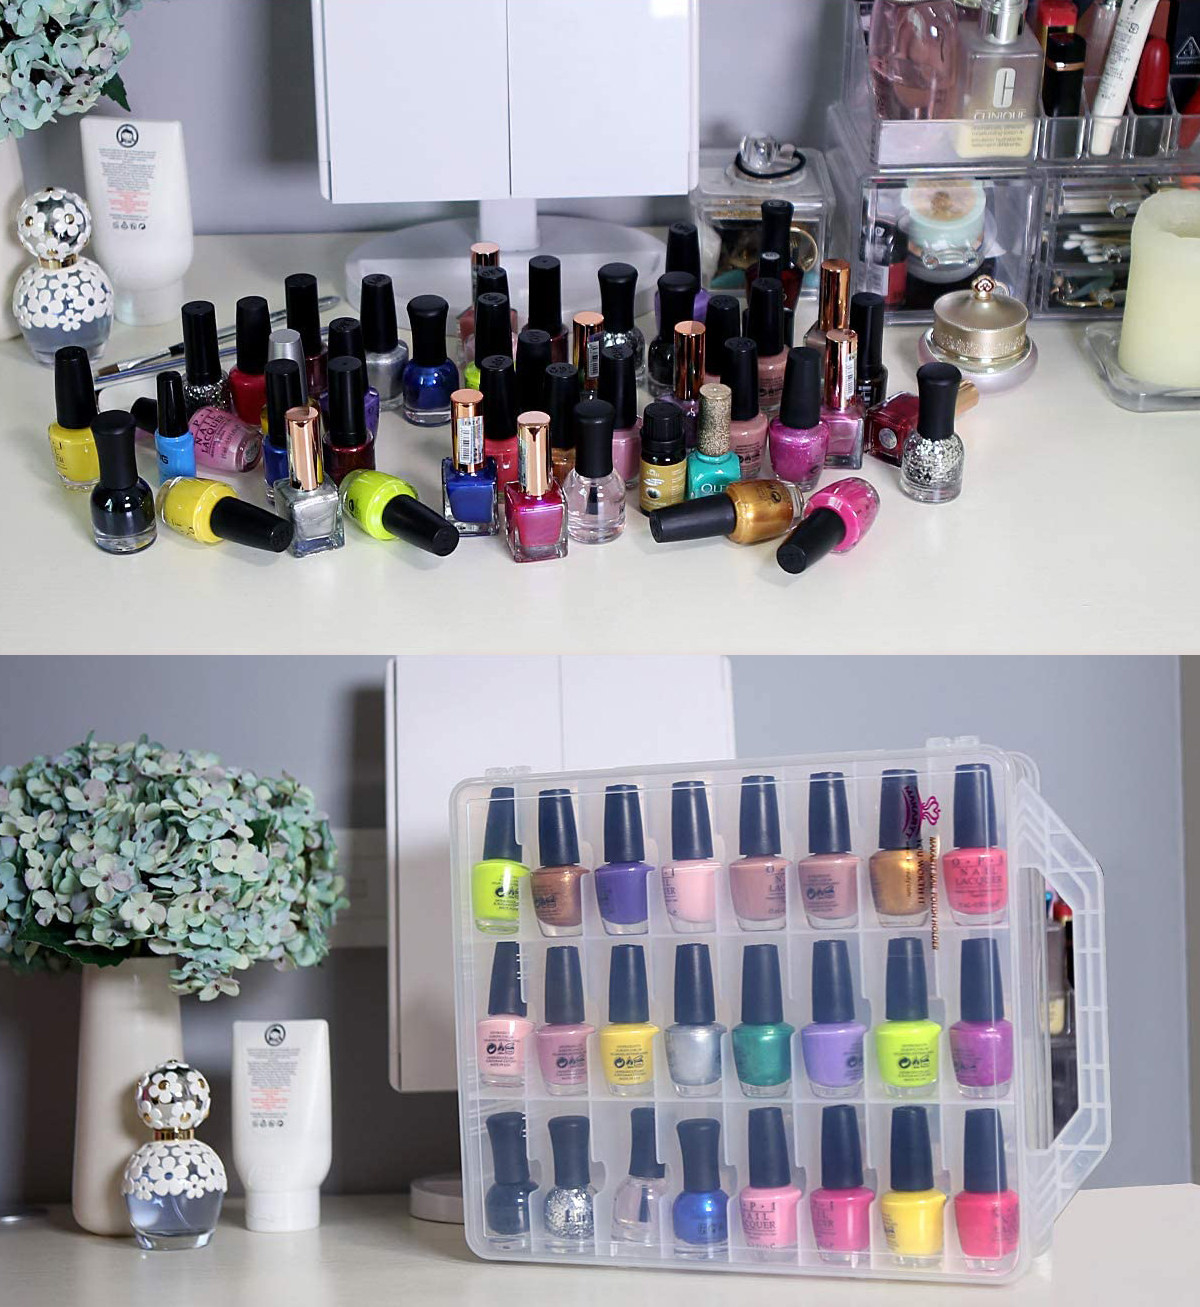 A plastic box filled with nail polish bottles